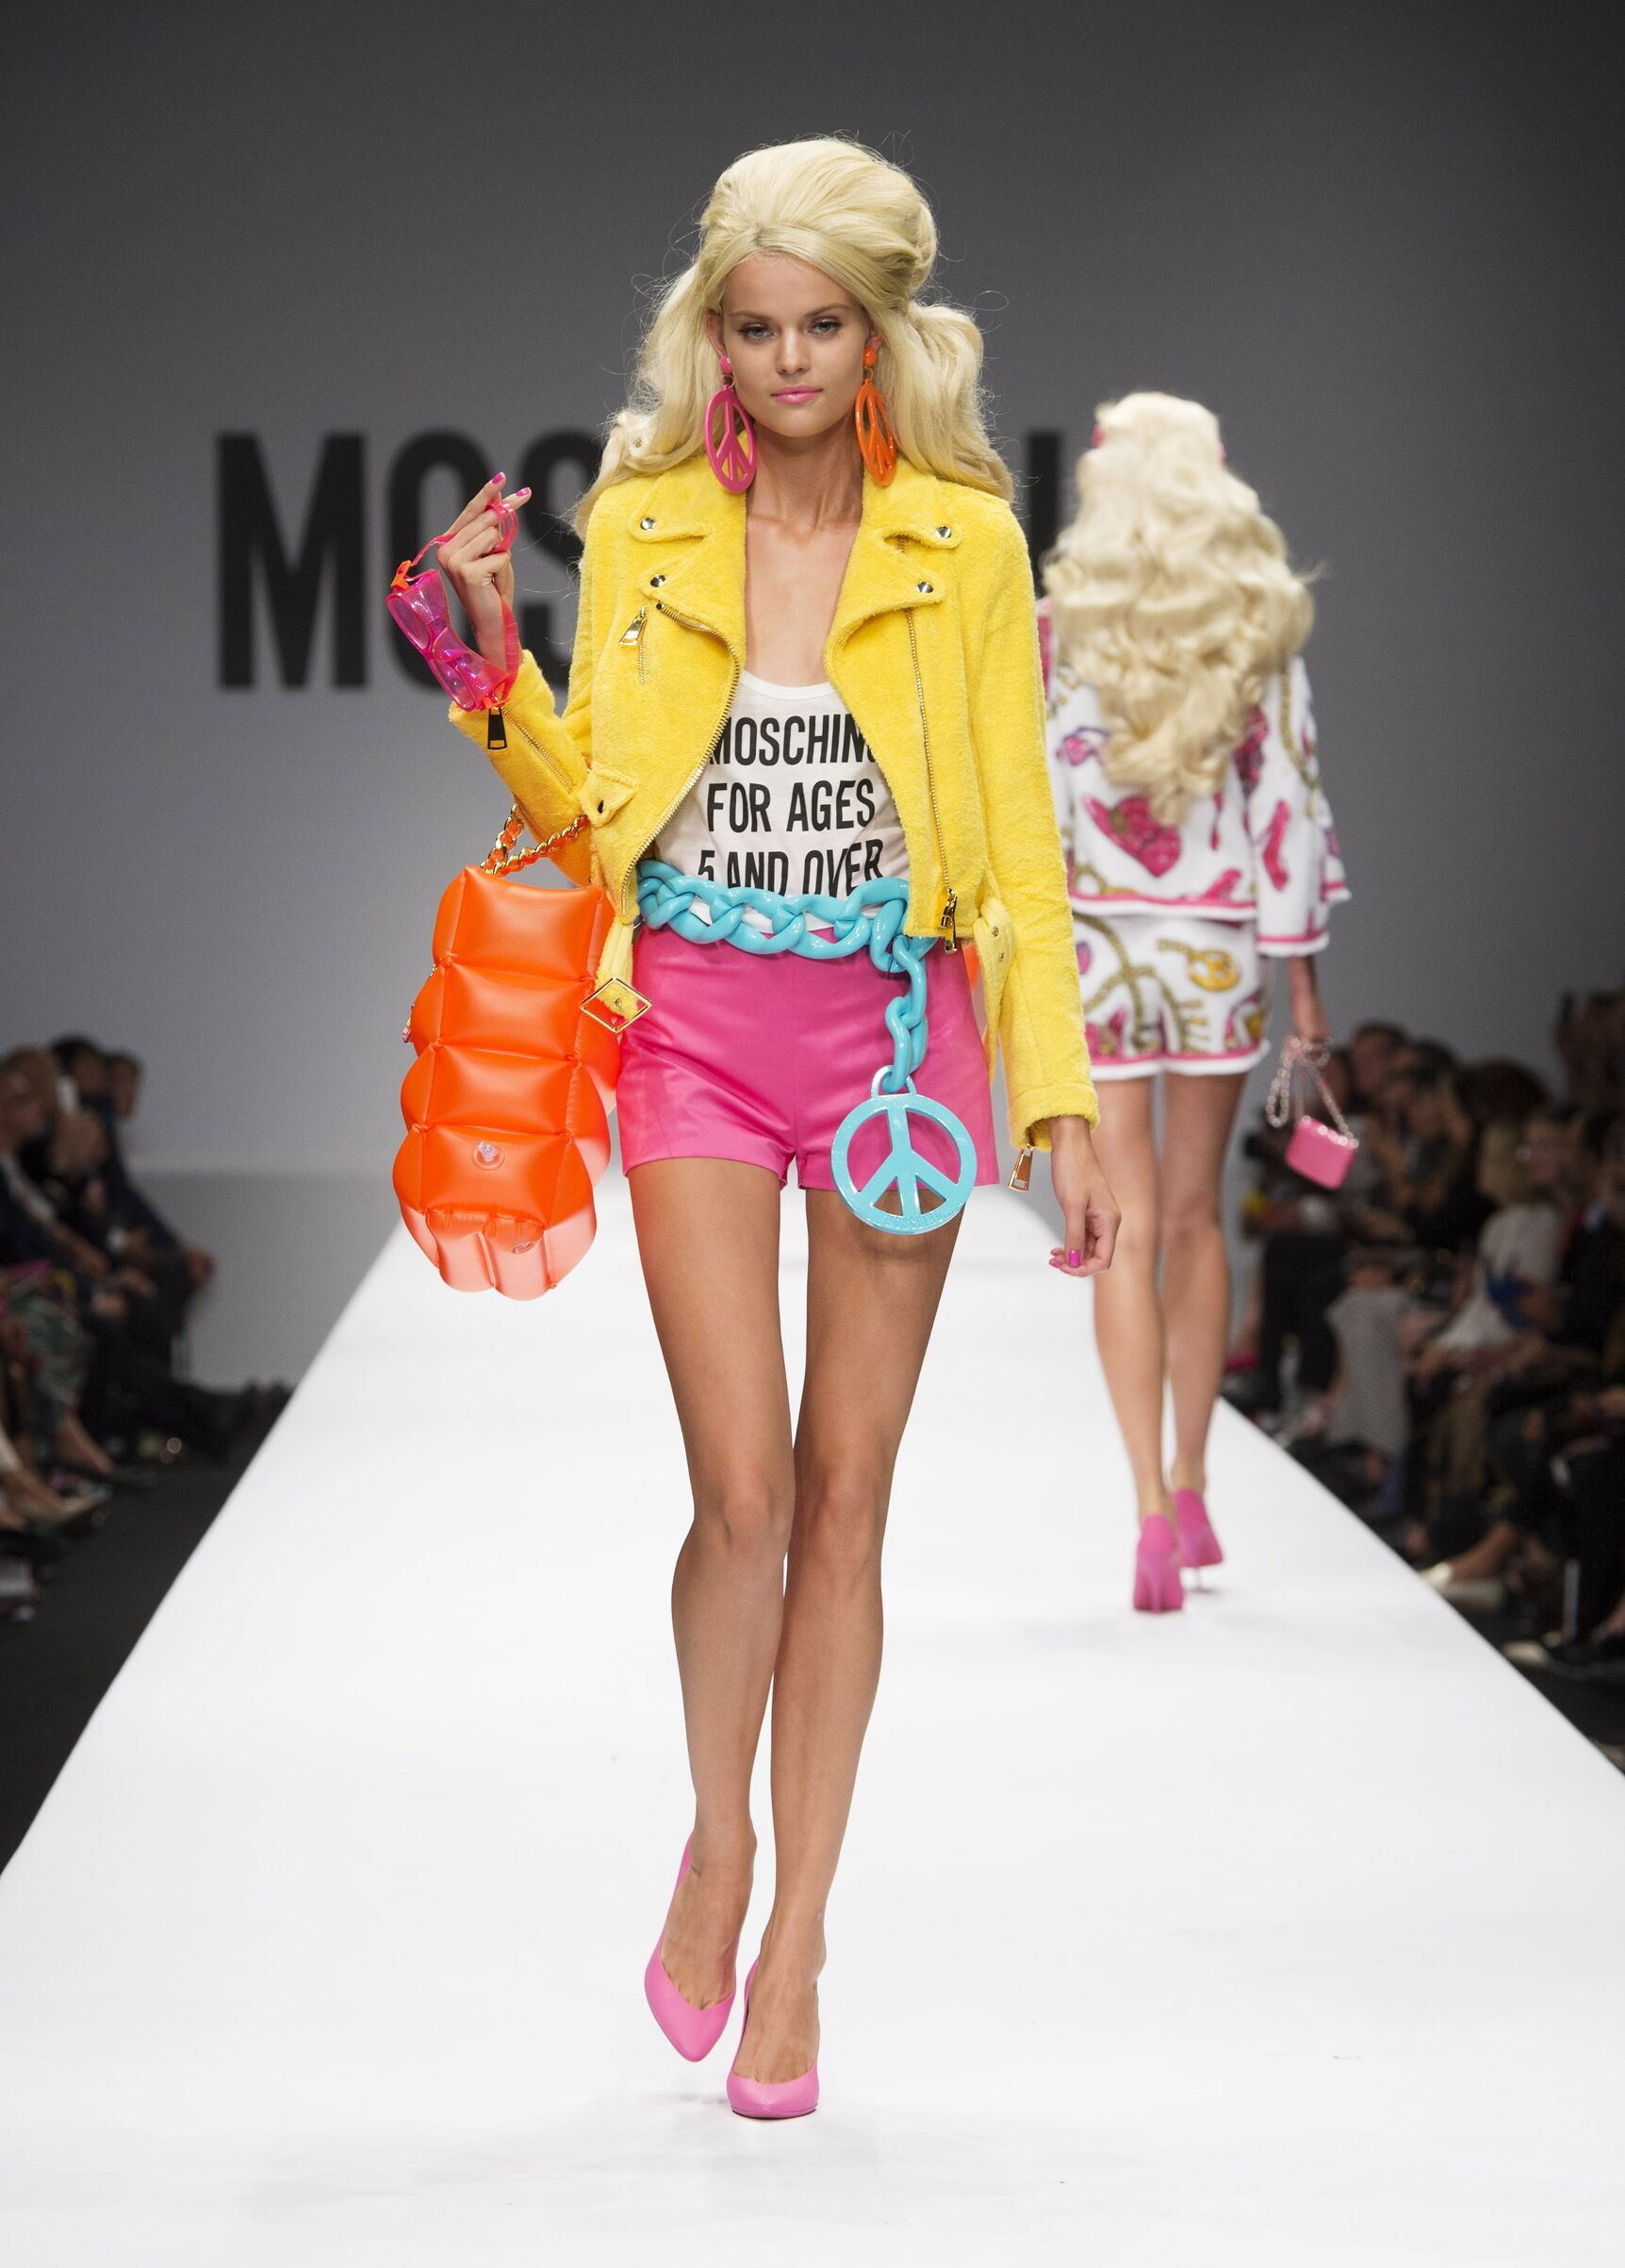 Moschino Summer 2015 Catwalk